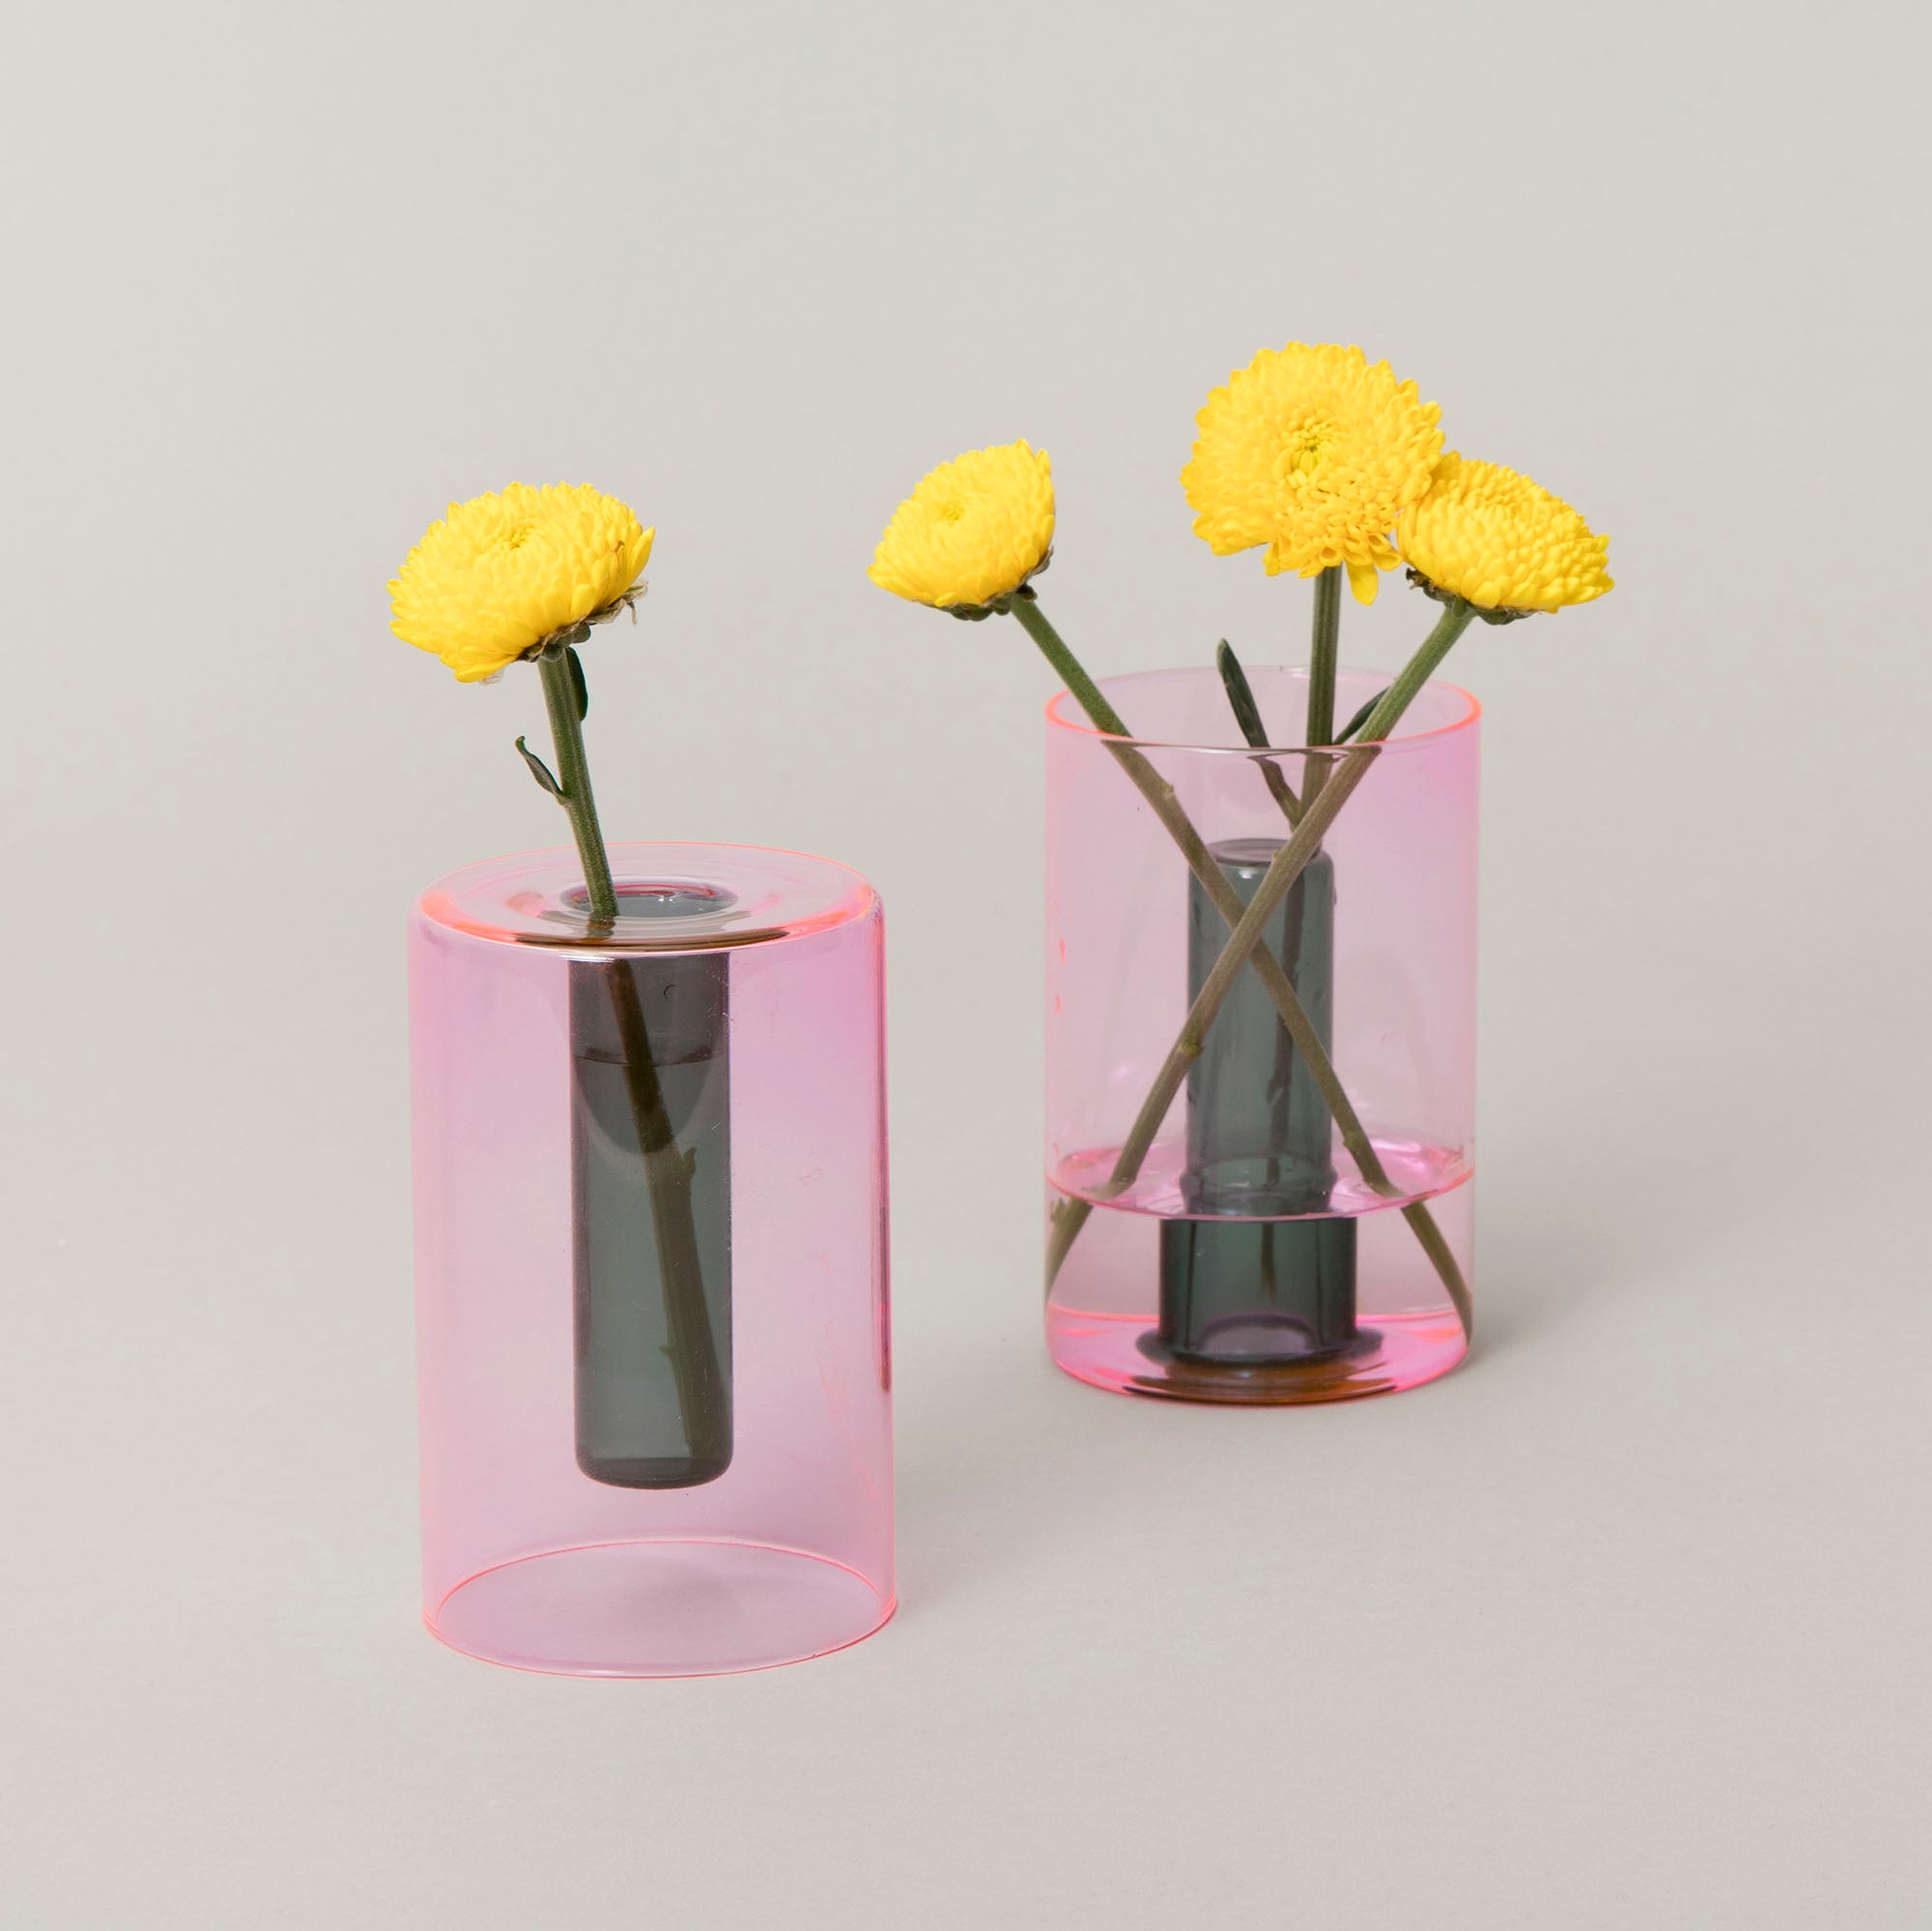 Block Reversible Glass Vase - Small 3